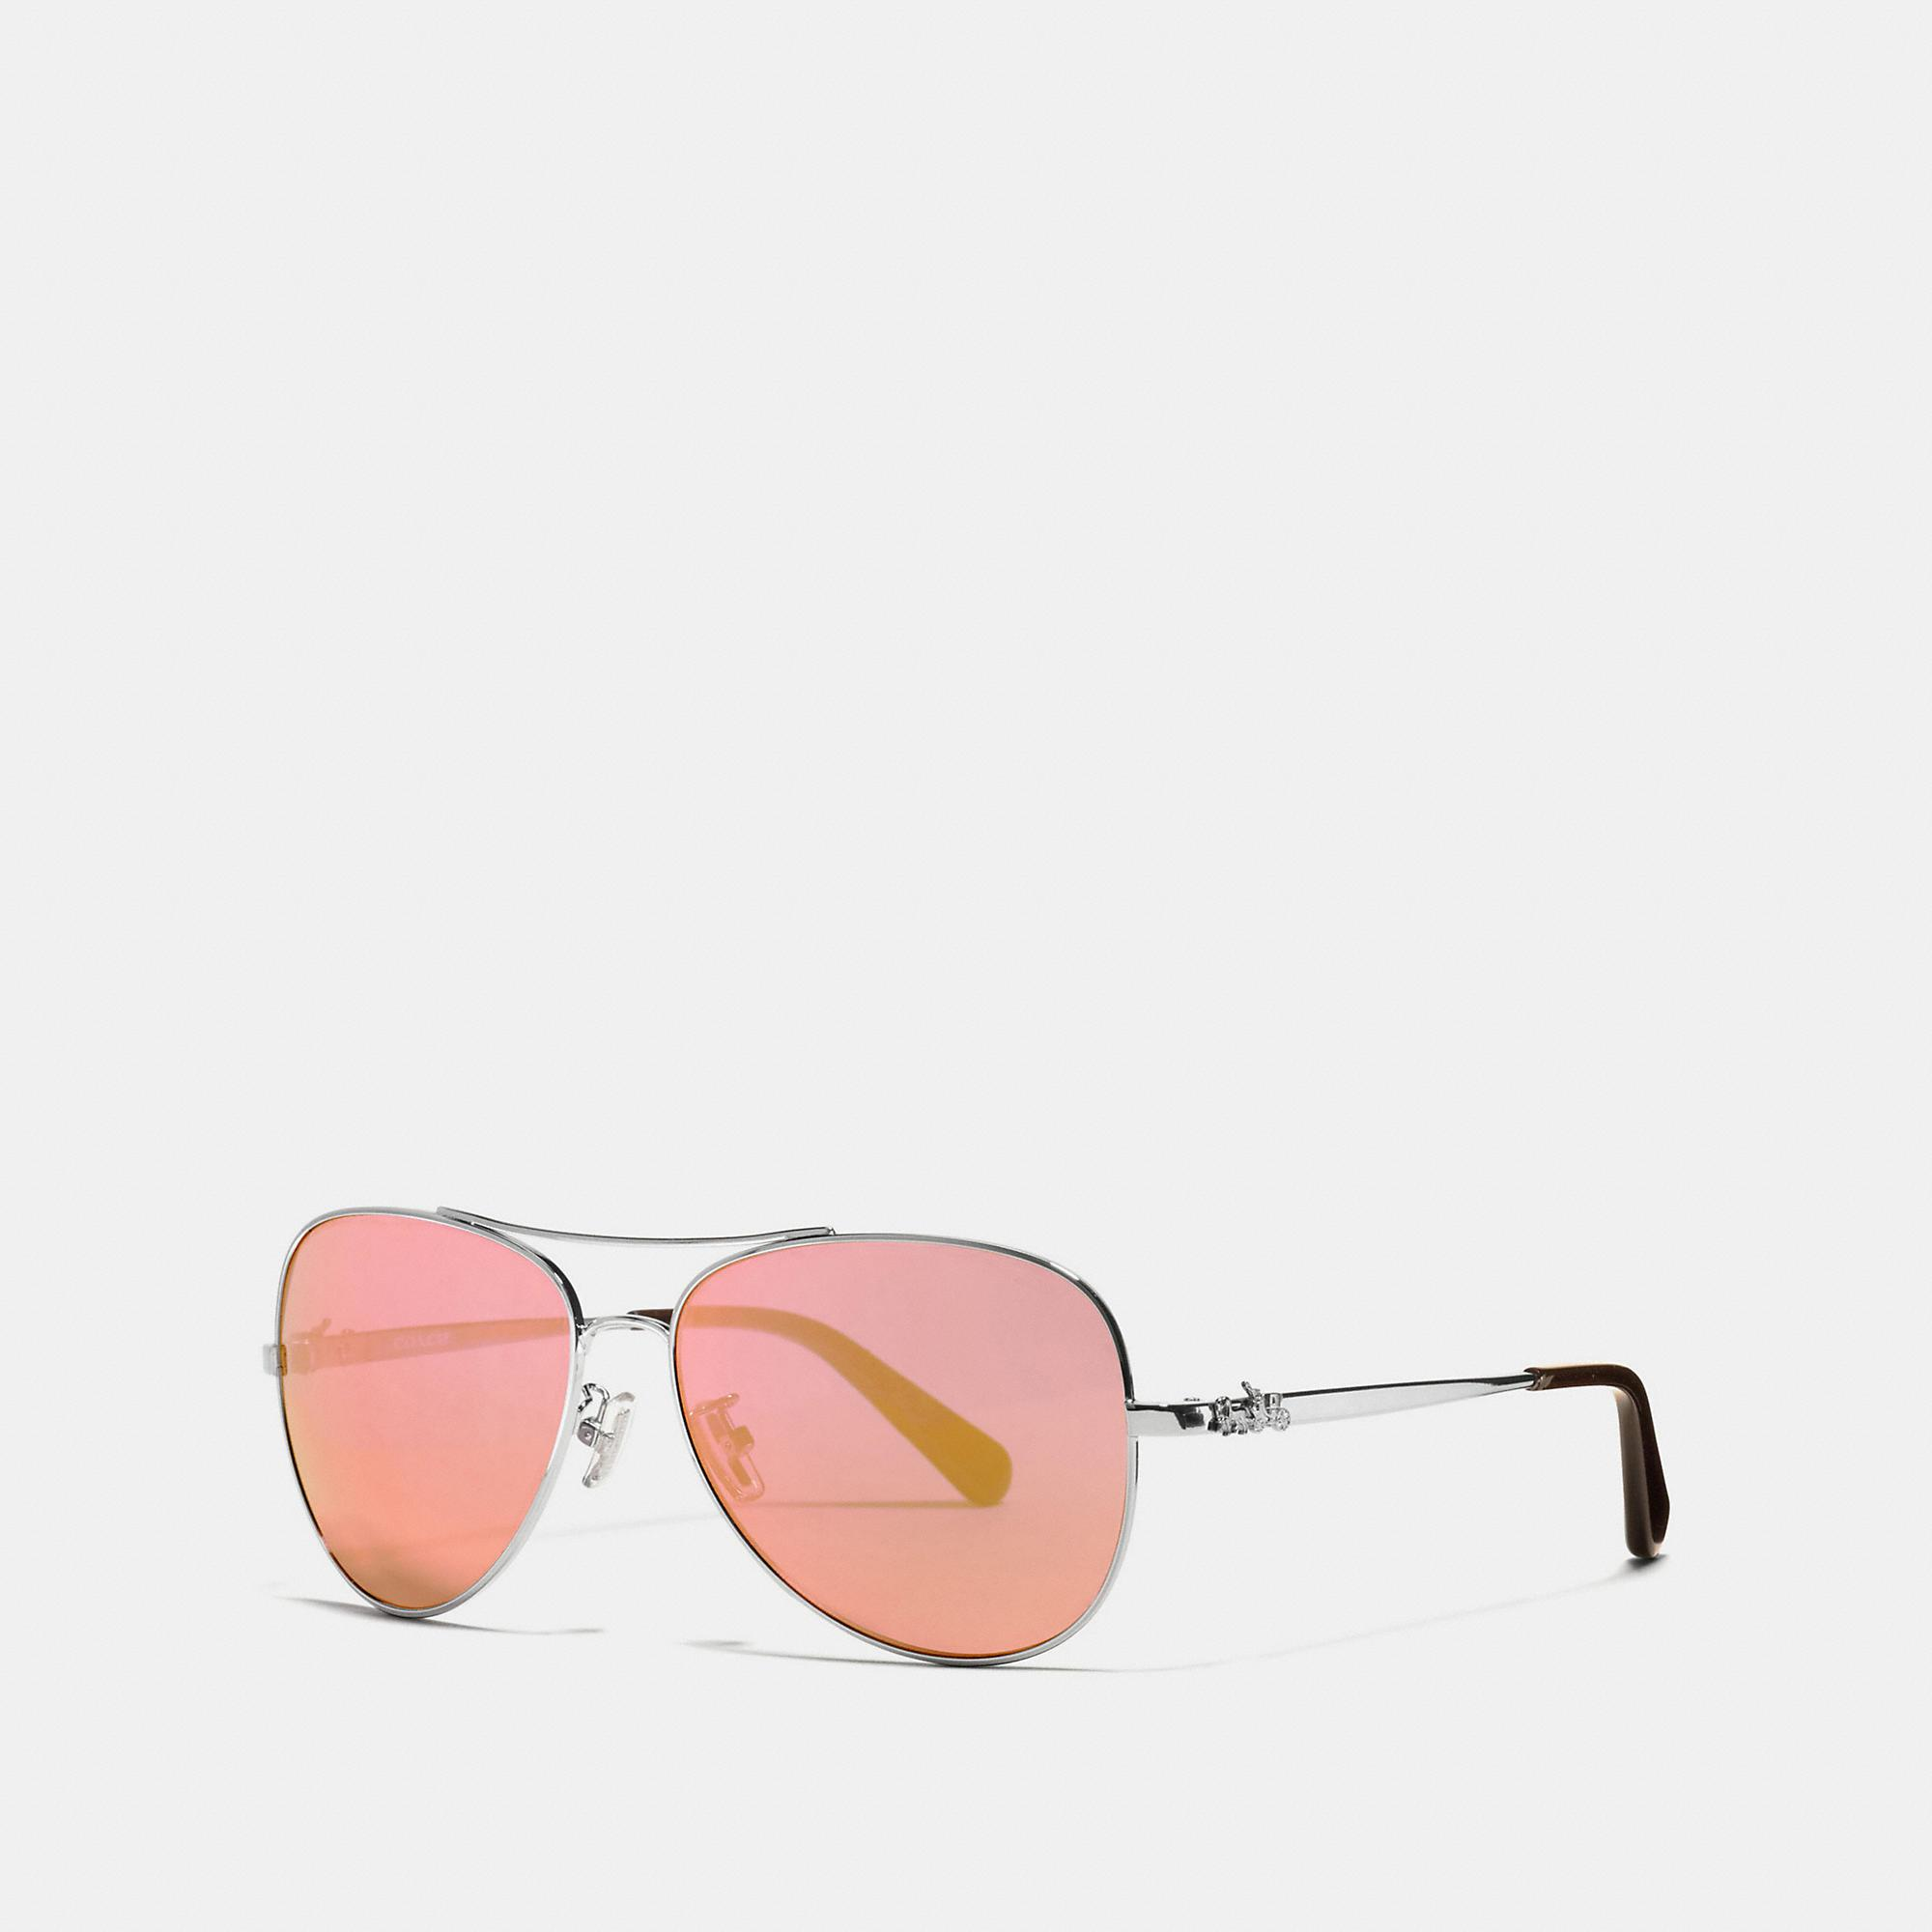 733c376e5740 ... norway lyst coach horse and carriage metal pilot sunglasses in pink  57ad4 00545